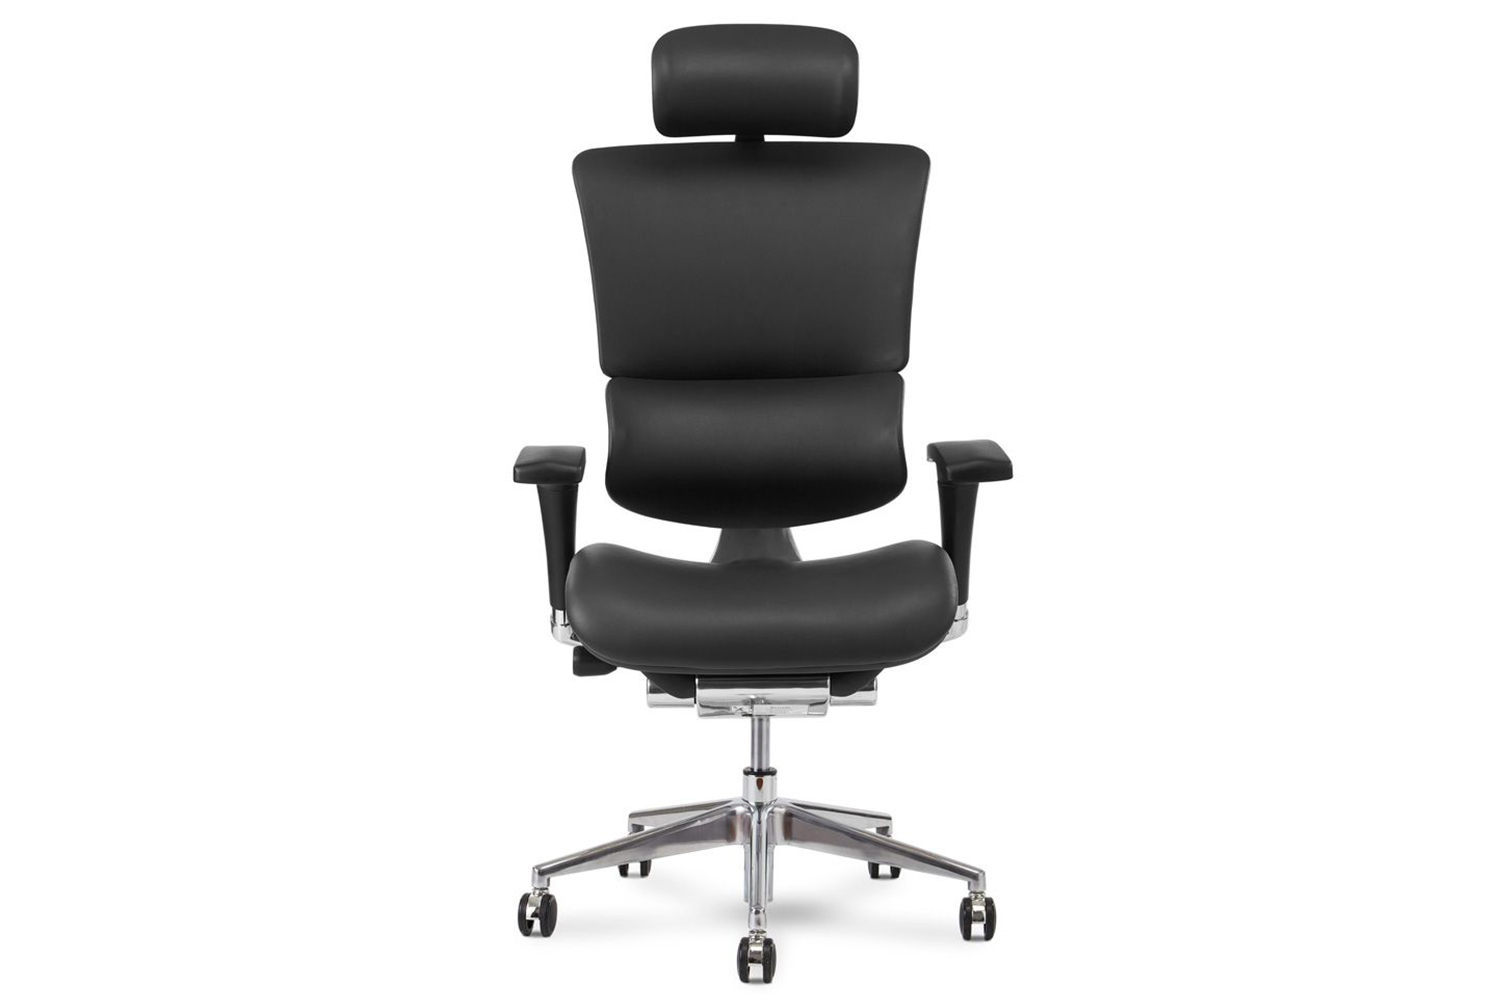 The X4 leather executive chair is by X-Chair.